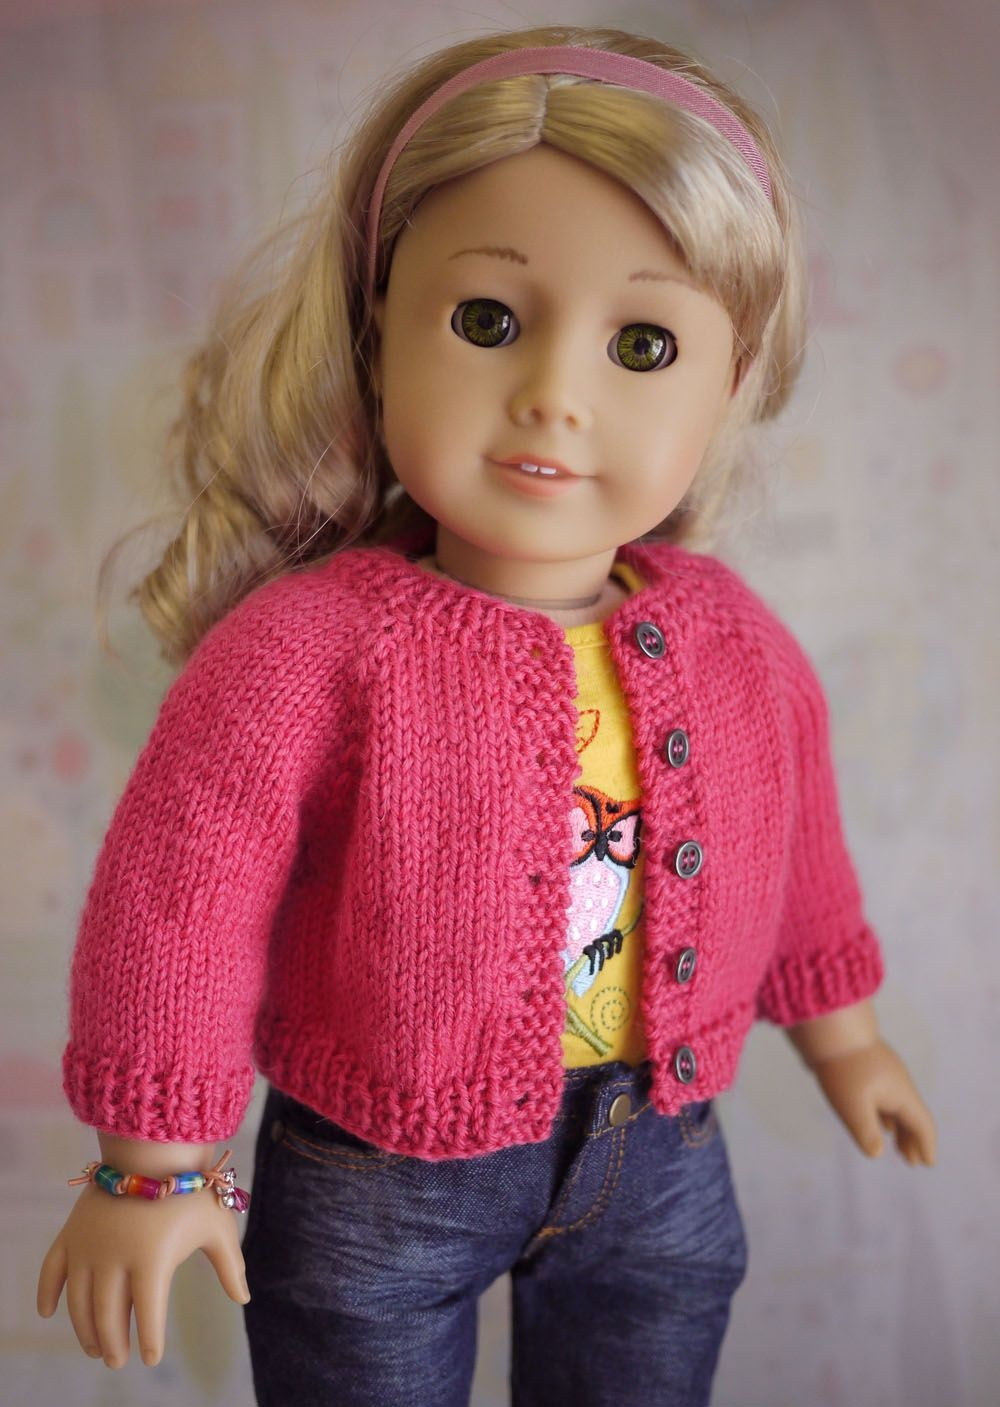 Free Patterns | Crafts: Dolls | Knitting Dolls Clothes, Knitted Doll - Free Printable Crochet Doll Clothes Patterns For 18 Inch Dolls